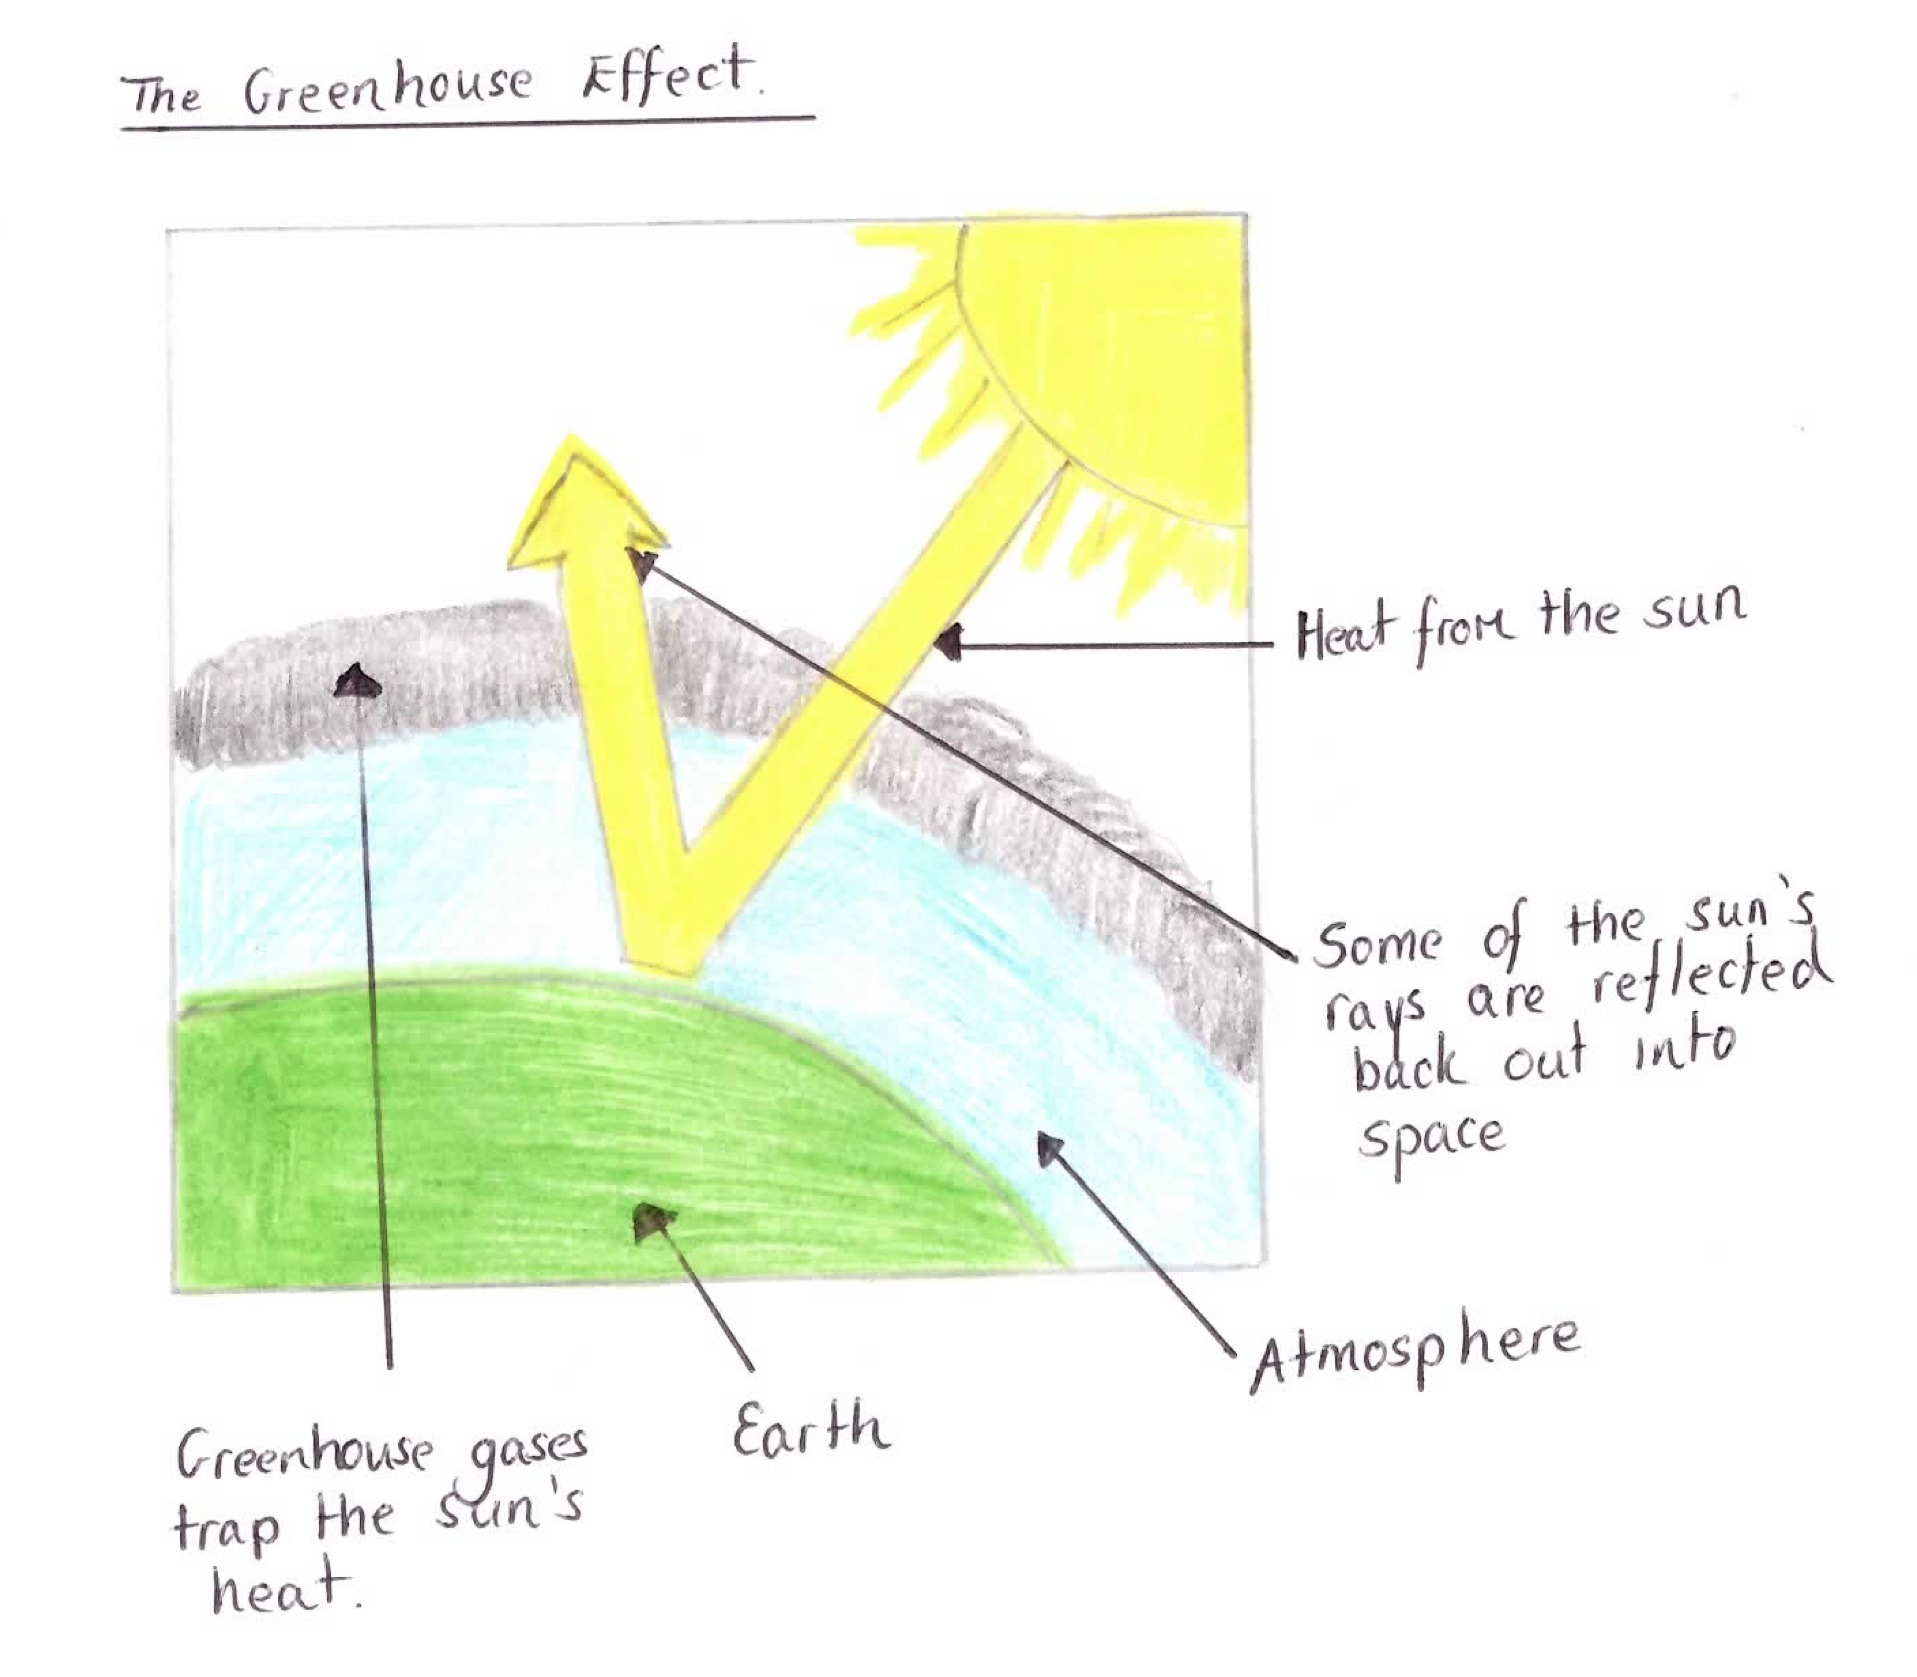 Junior cert geography higher 2013 section 2 q2 this is similar to how a greenhouse works by letting in heat from the sun and trapping it these are known as the greenhouse gases pooptronica Choice Image